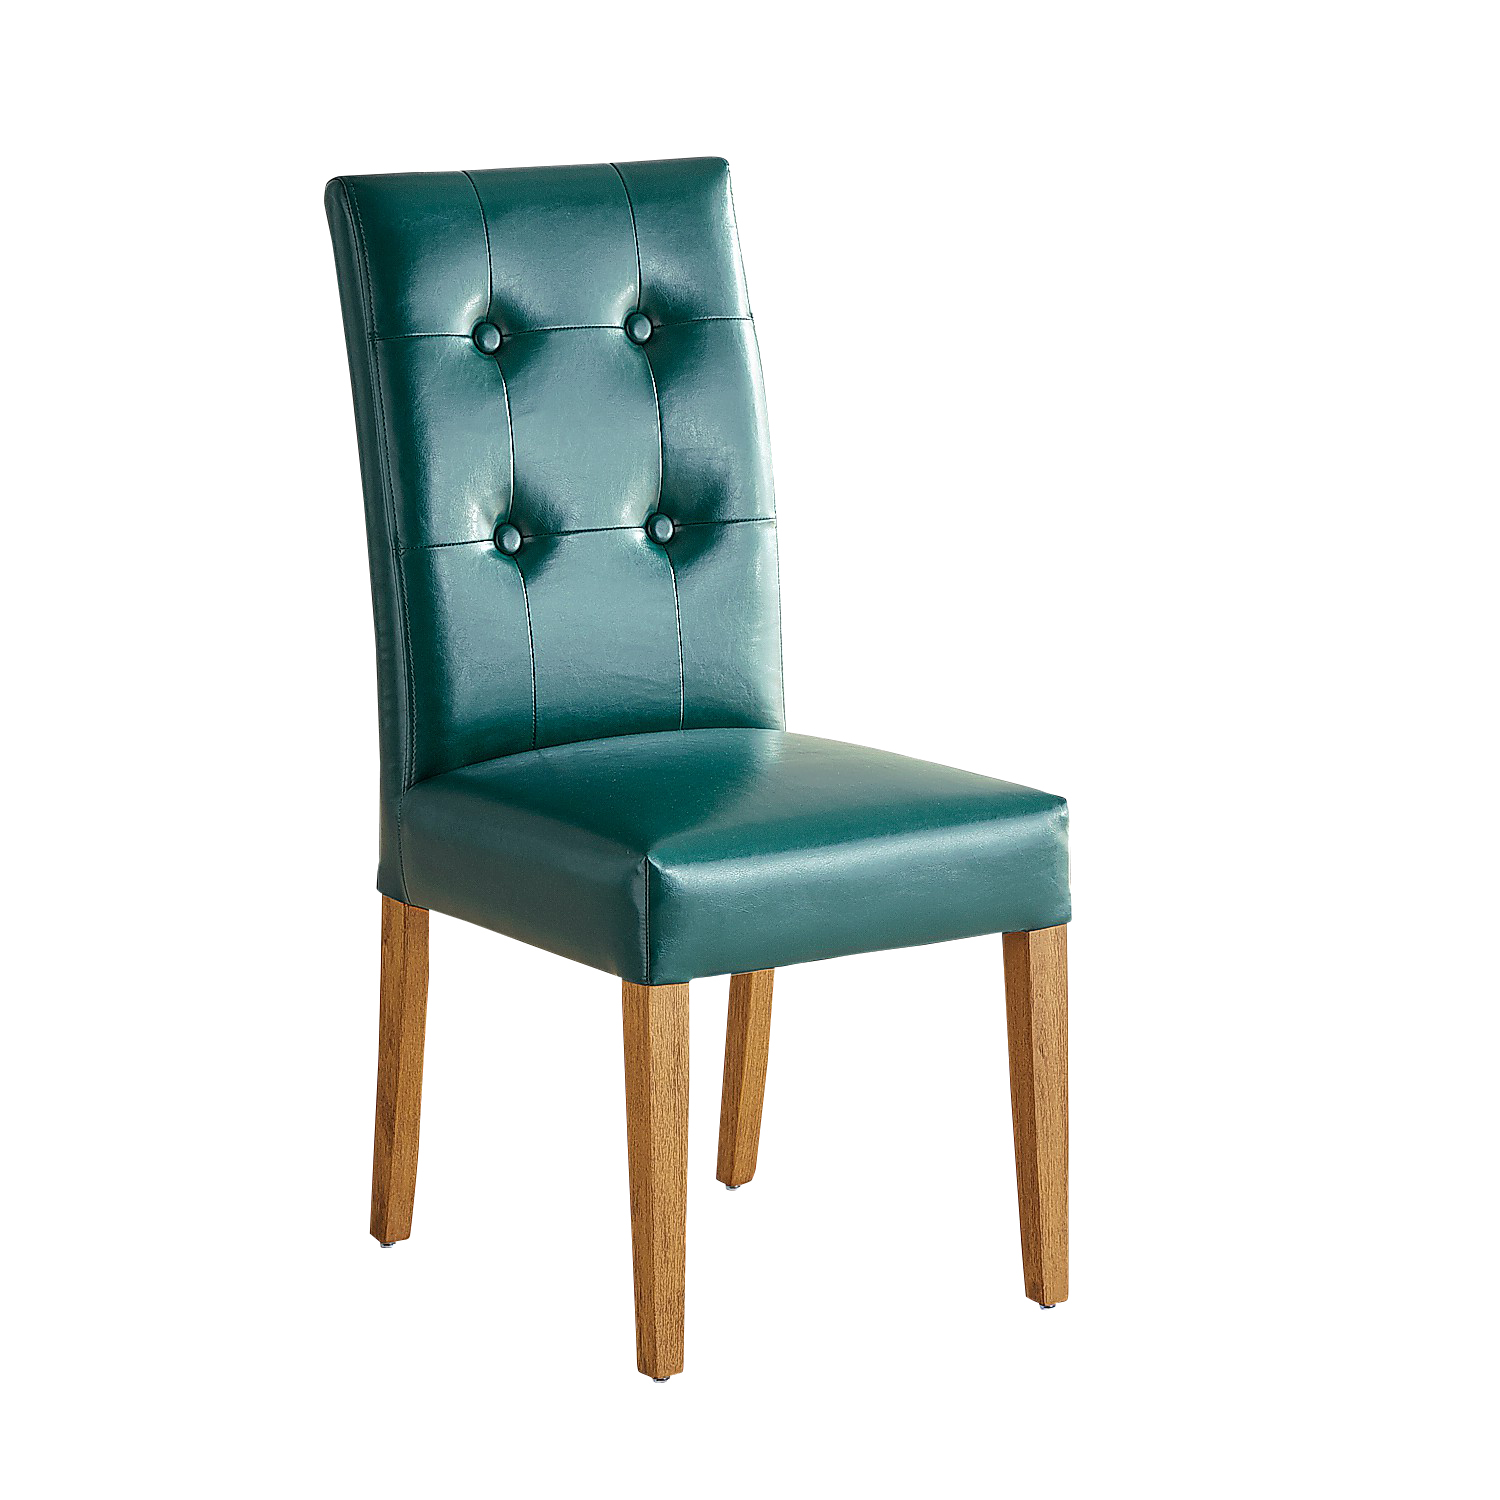 Mason Teal Dining Chair with Java Legs